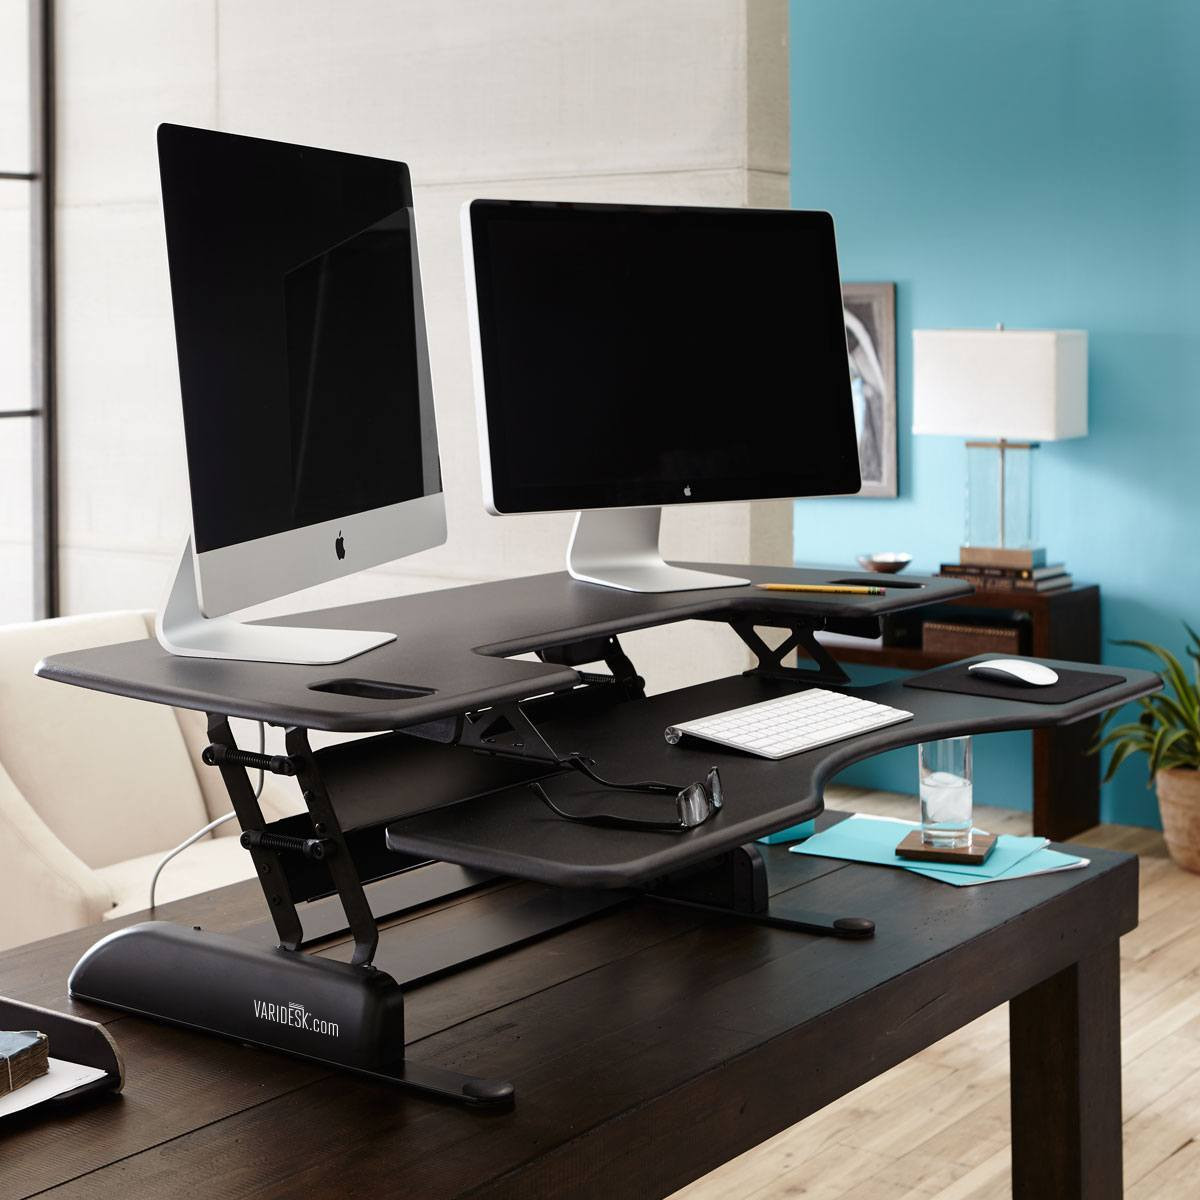 Review of the Varidesk Pro Plus 48